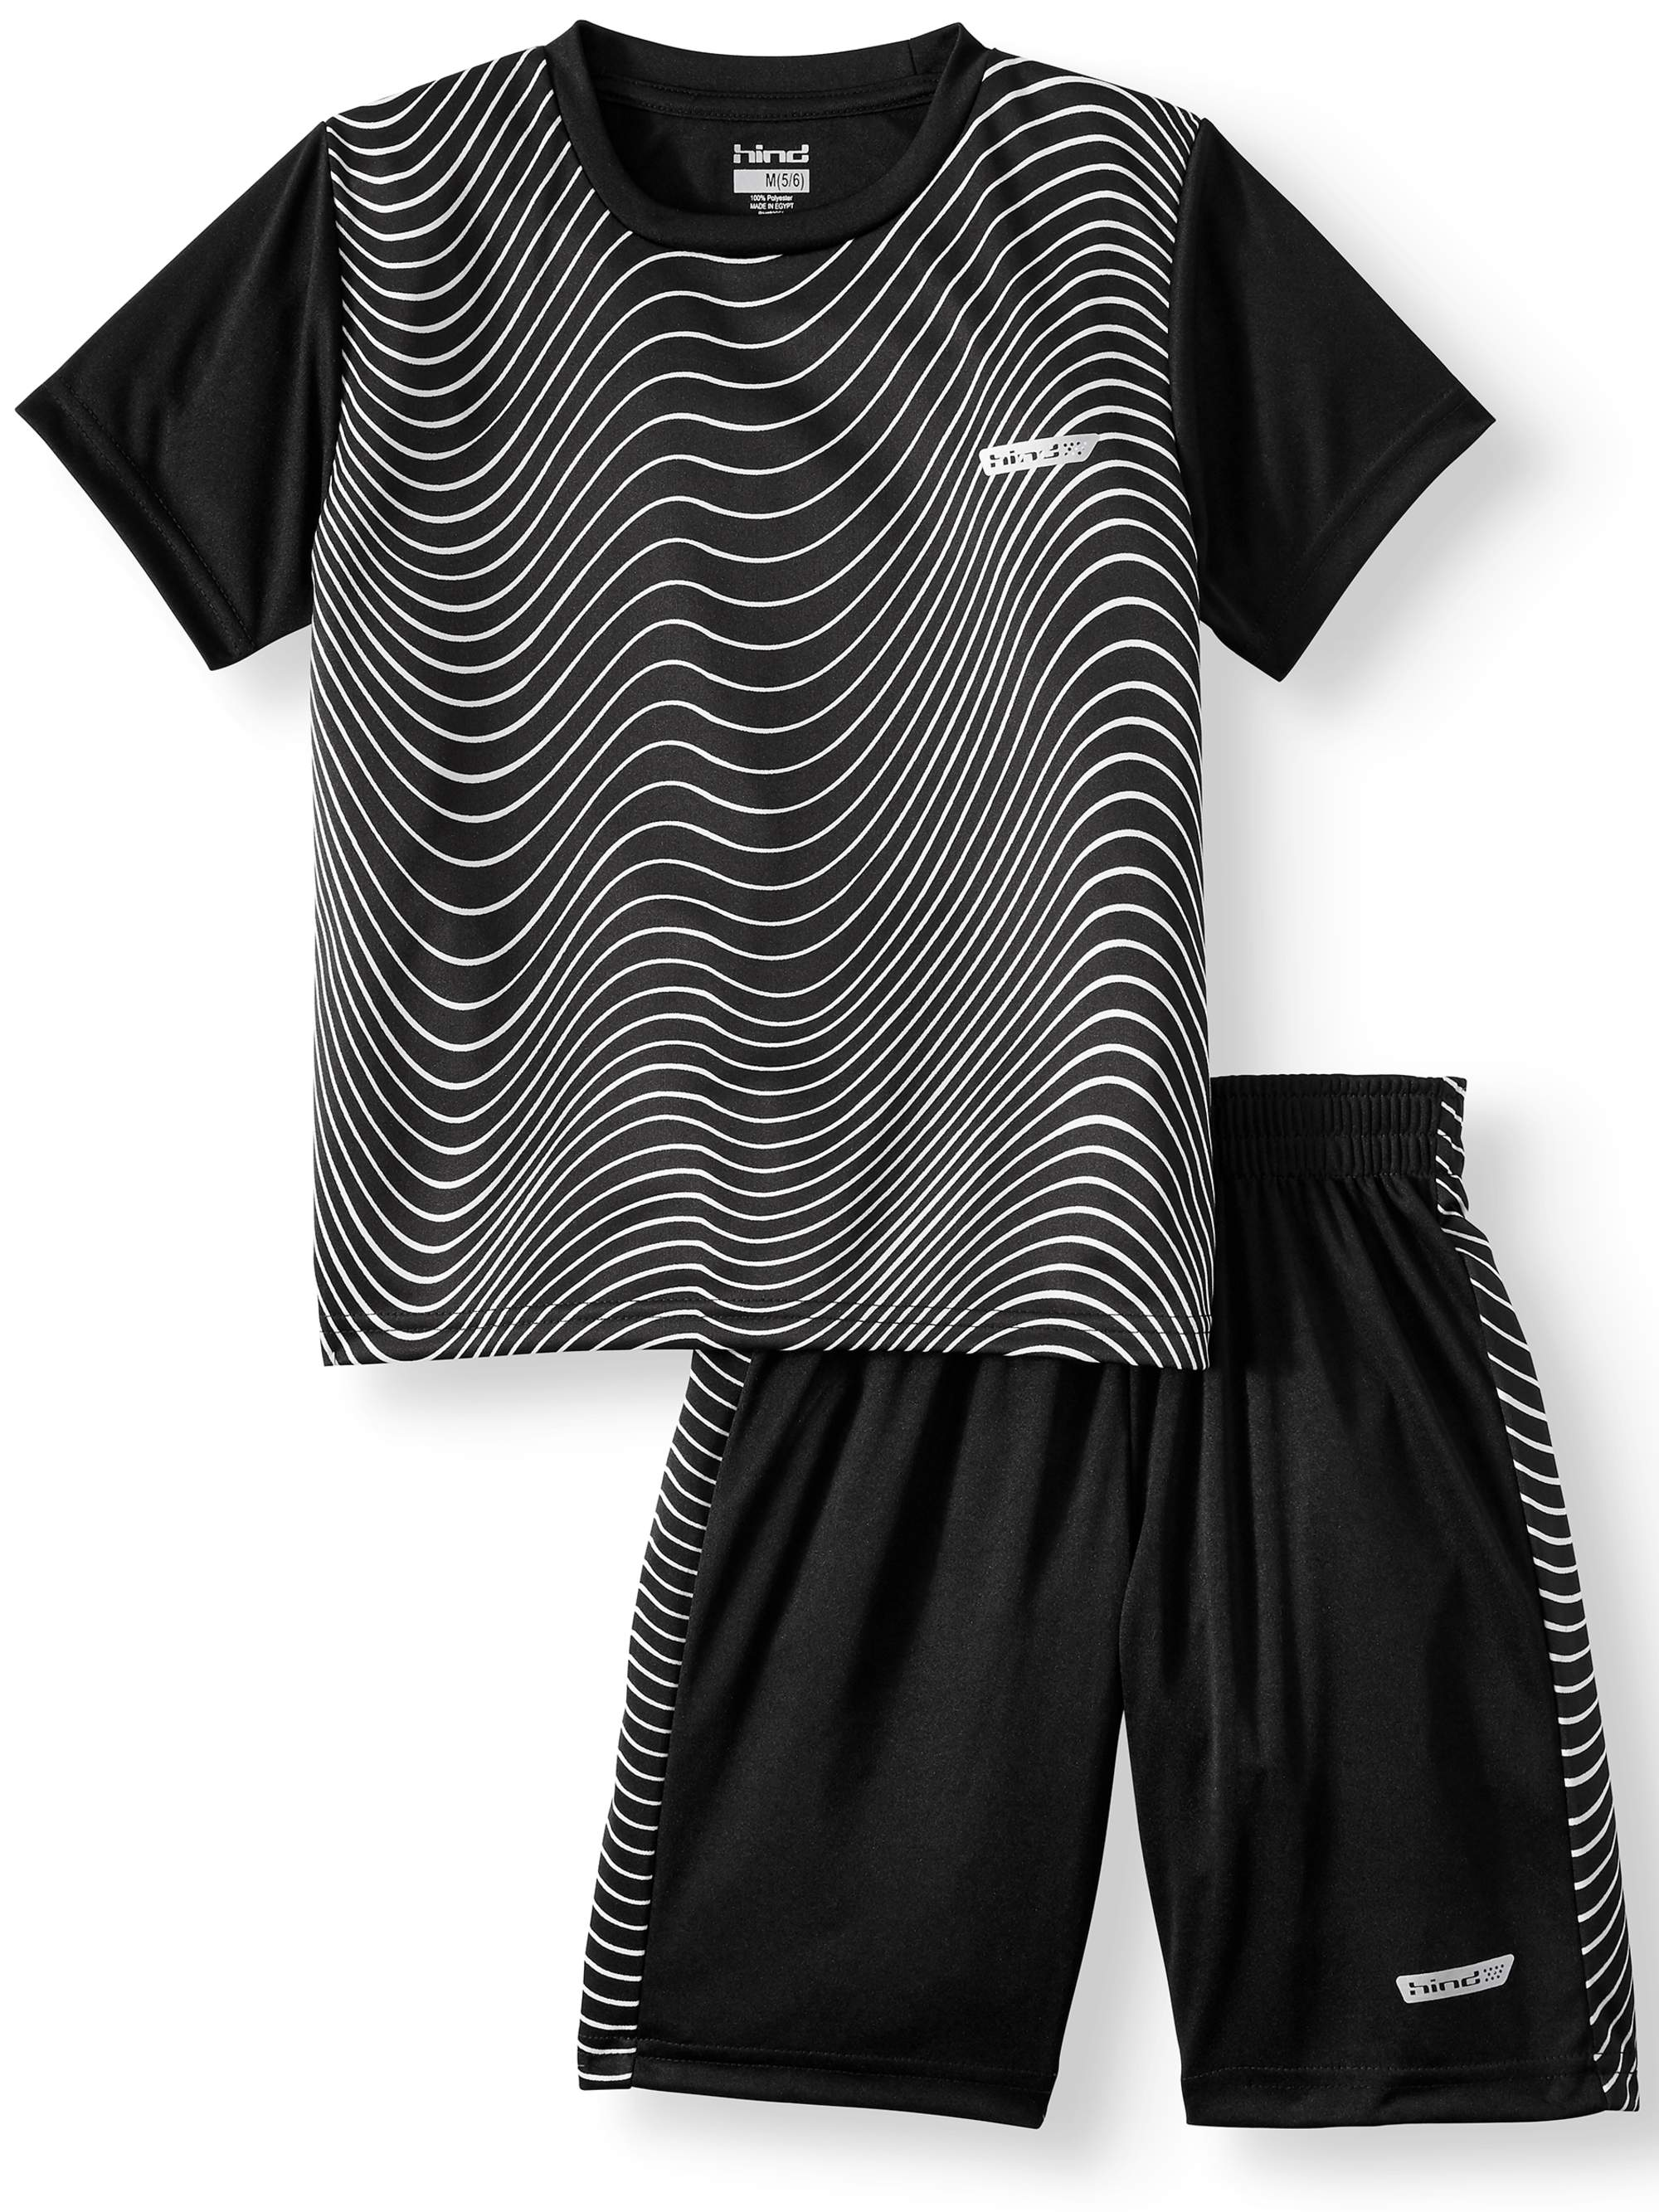 Printed T-Shirt and Poly Shorts, 2-Piece Outfit Set (Little Boys)